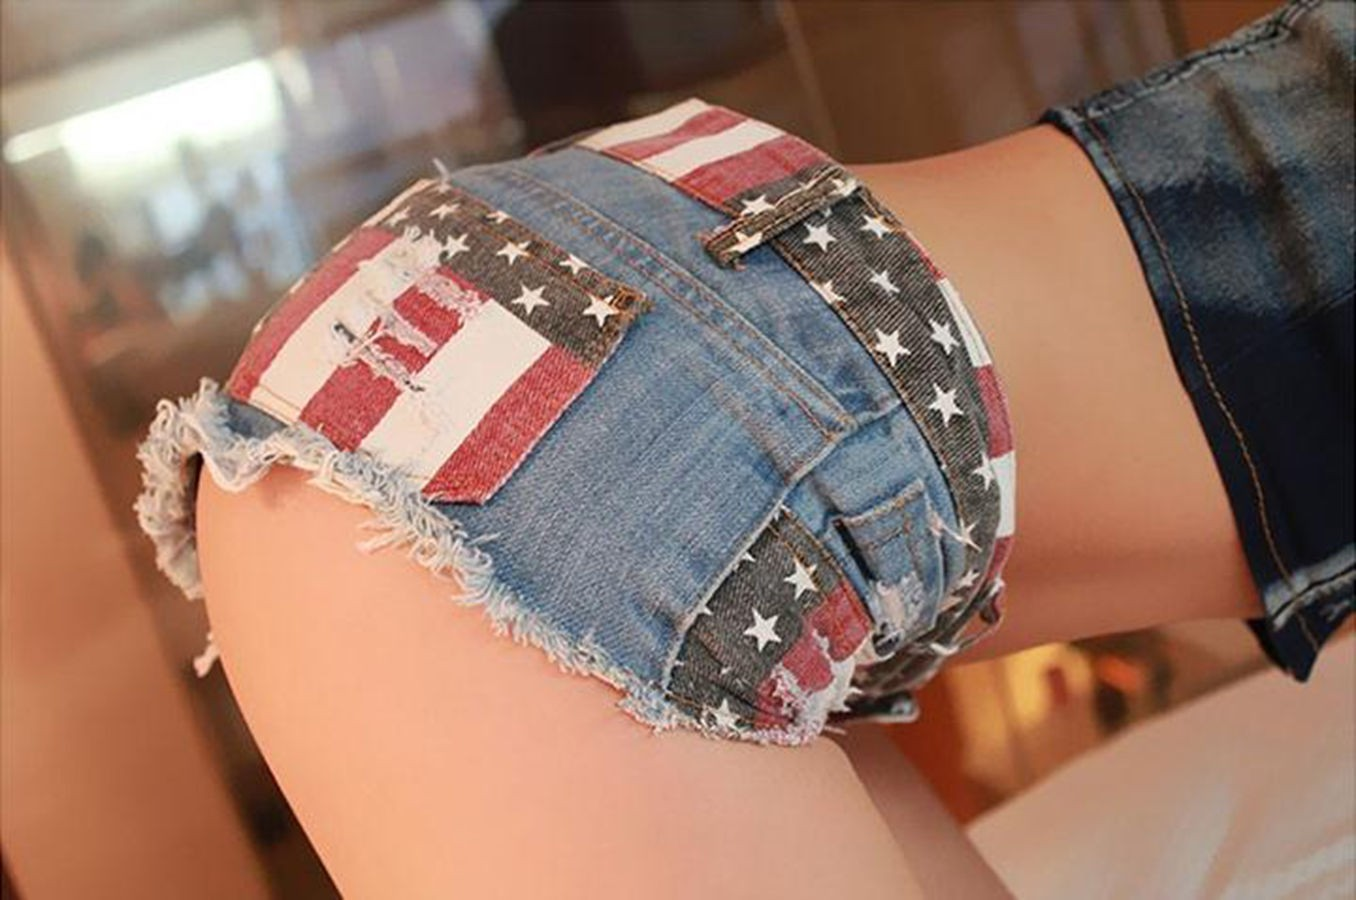 American Flag Sexy Skinny Jeans Tease Babes Hipster Jeans Shorts The Nightclub Hot Pants Women